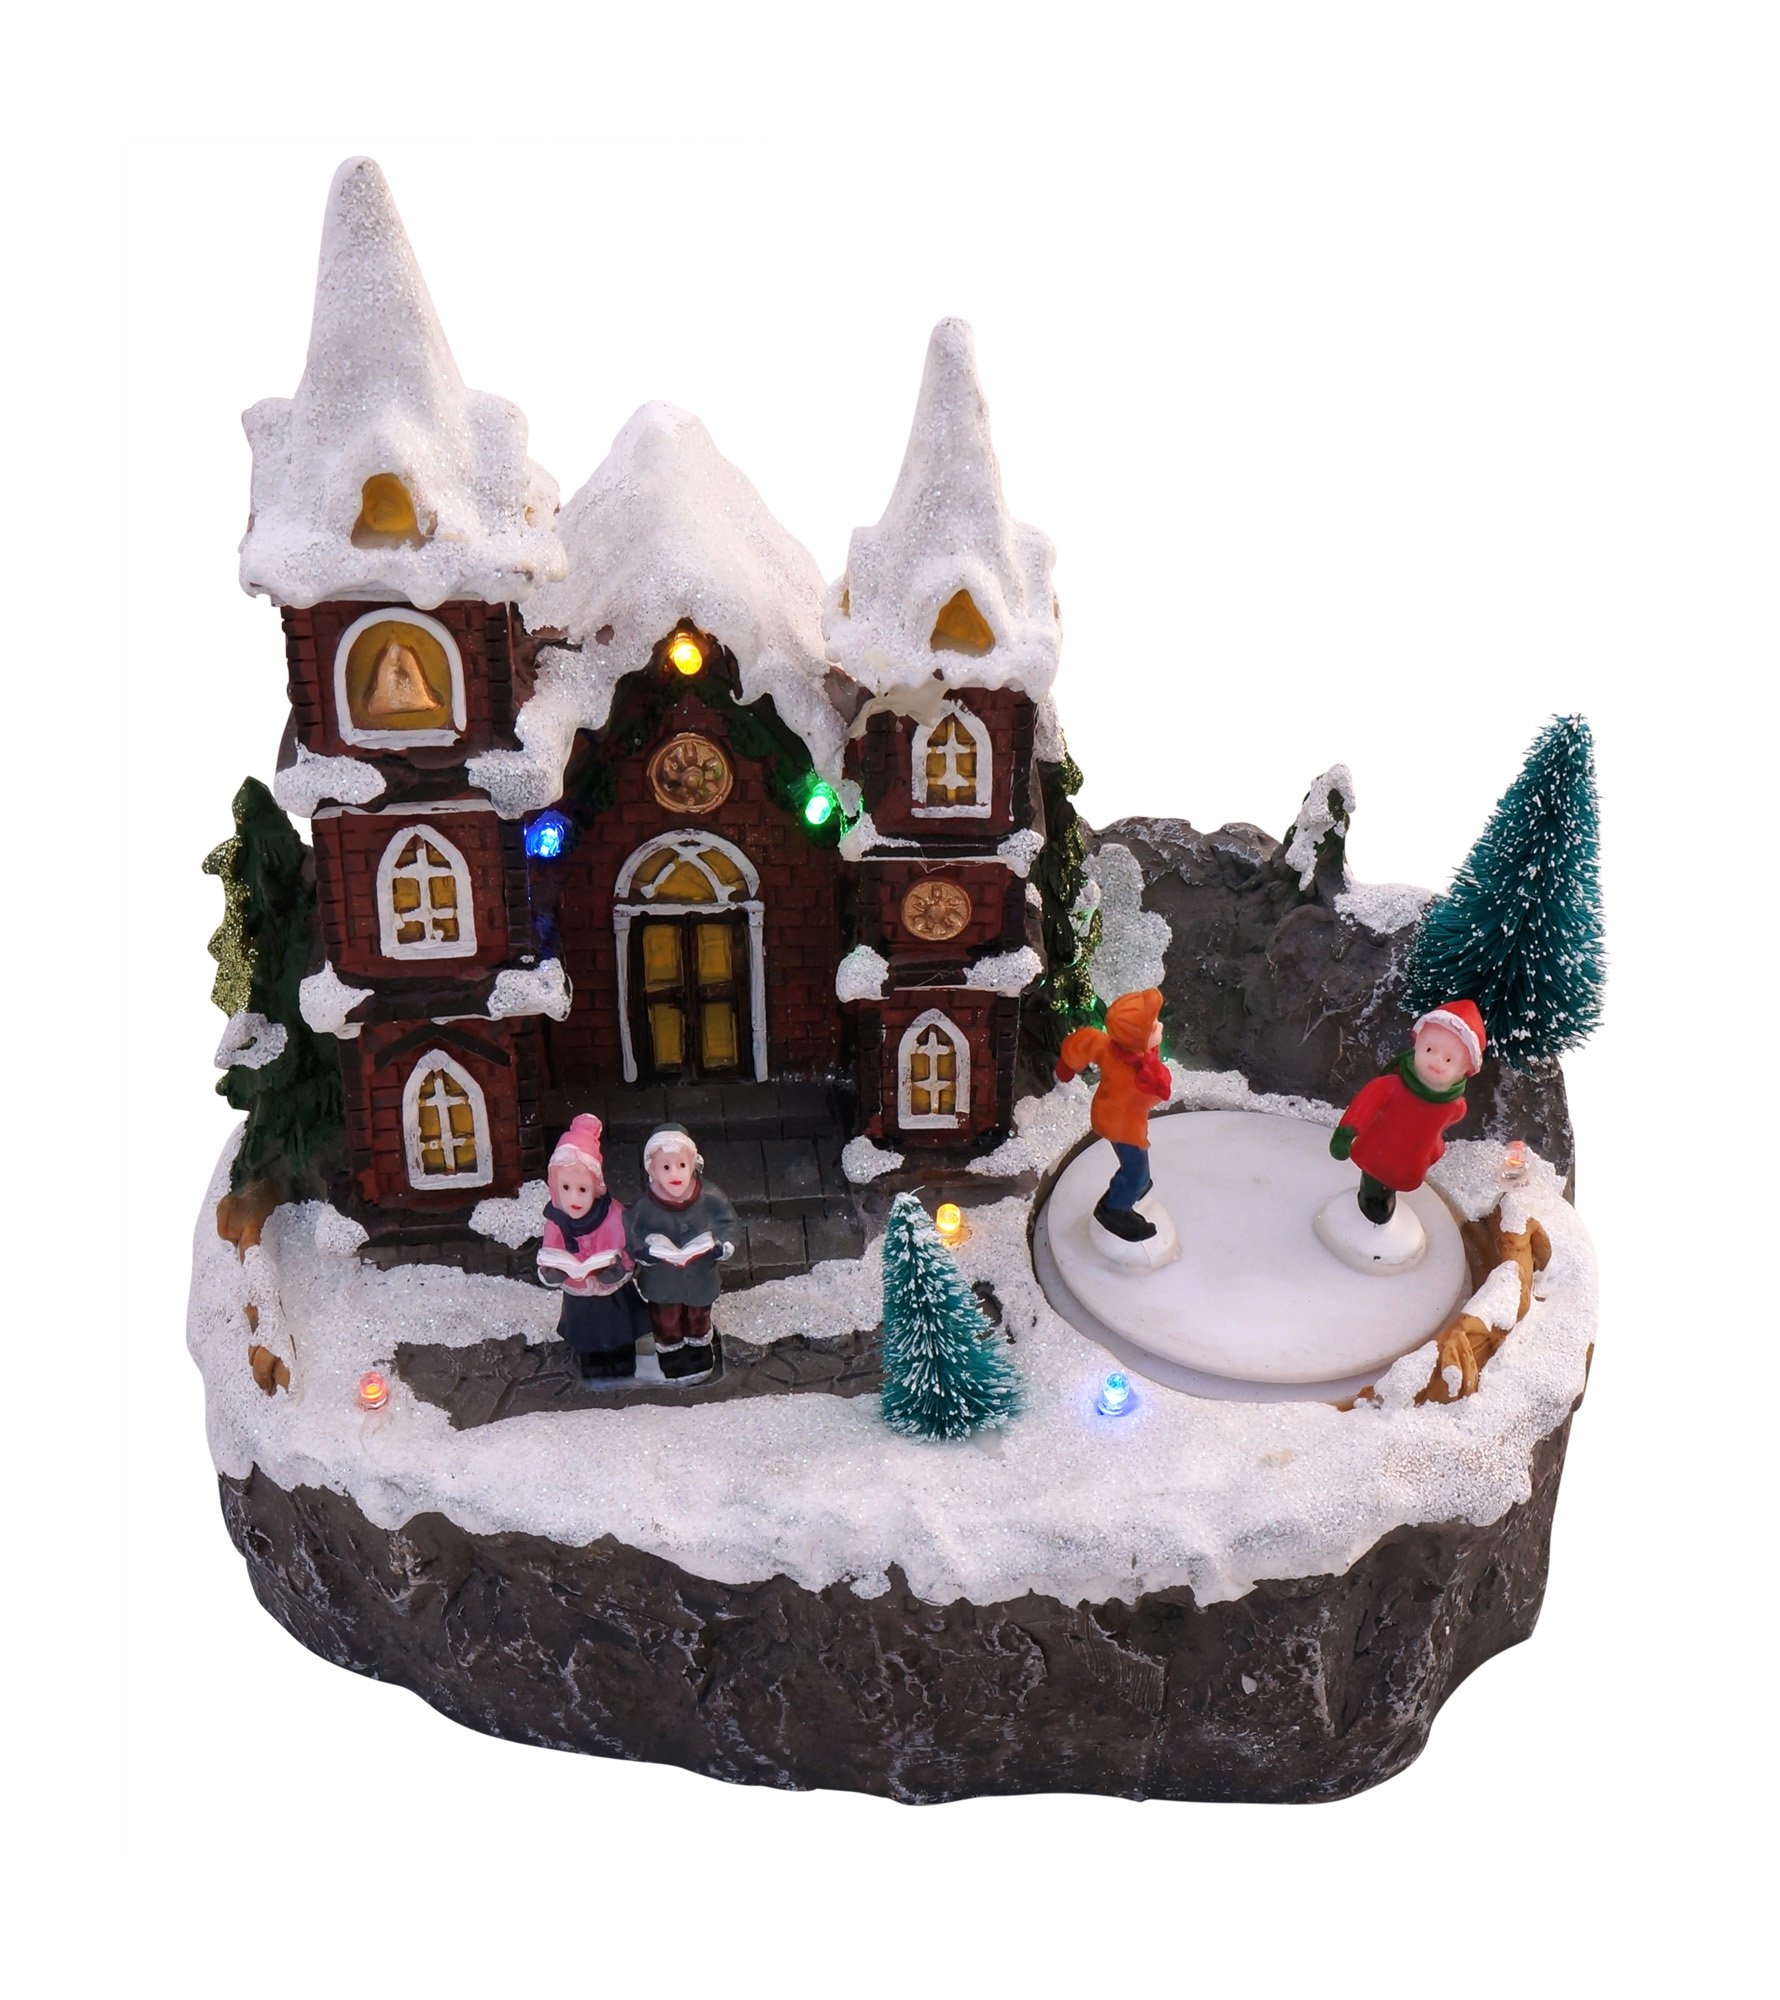 LED Lighted Snowy Christmas Village Animated Winter House Scenes (Ice Skaters)